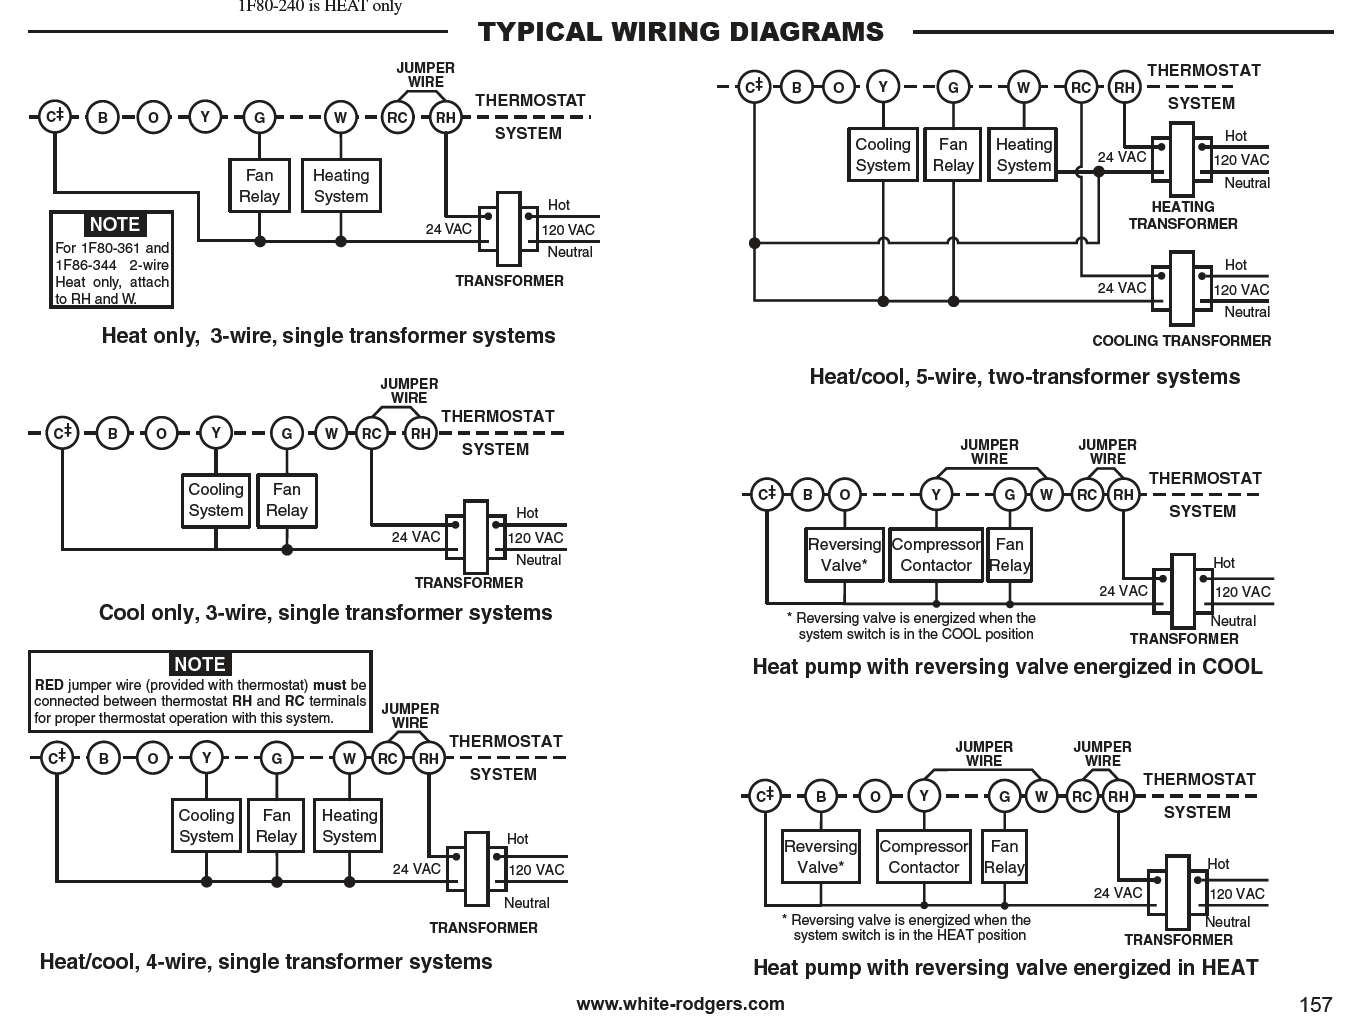 Primary Control Wiring Diagram Along With Honeywell Zone Valve Wiring